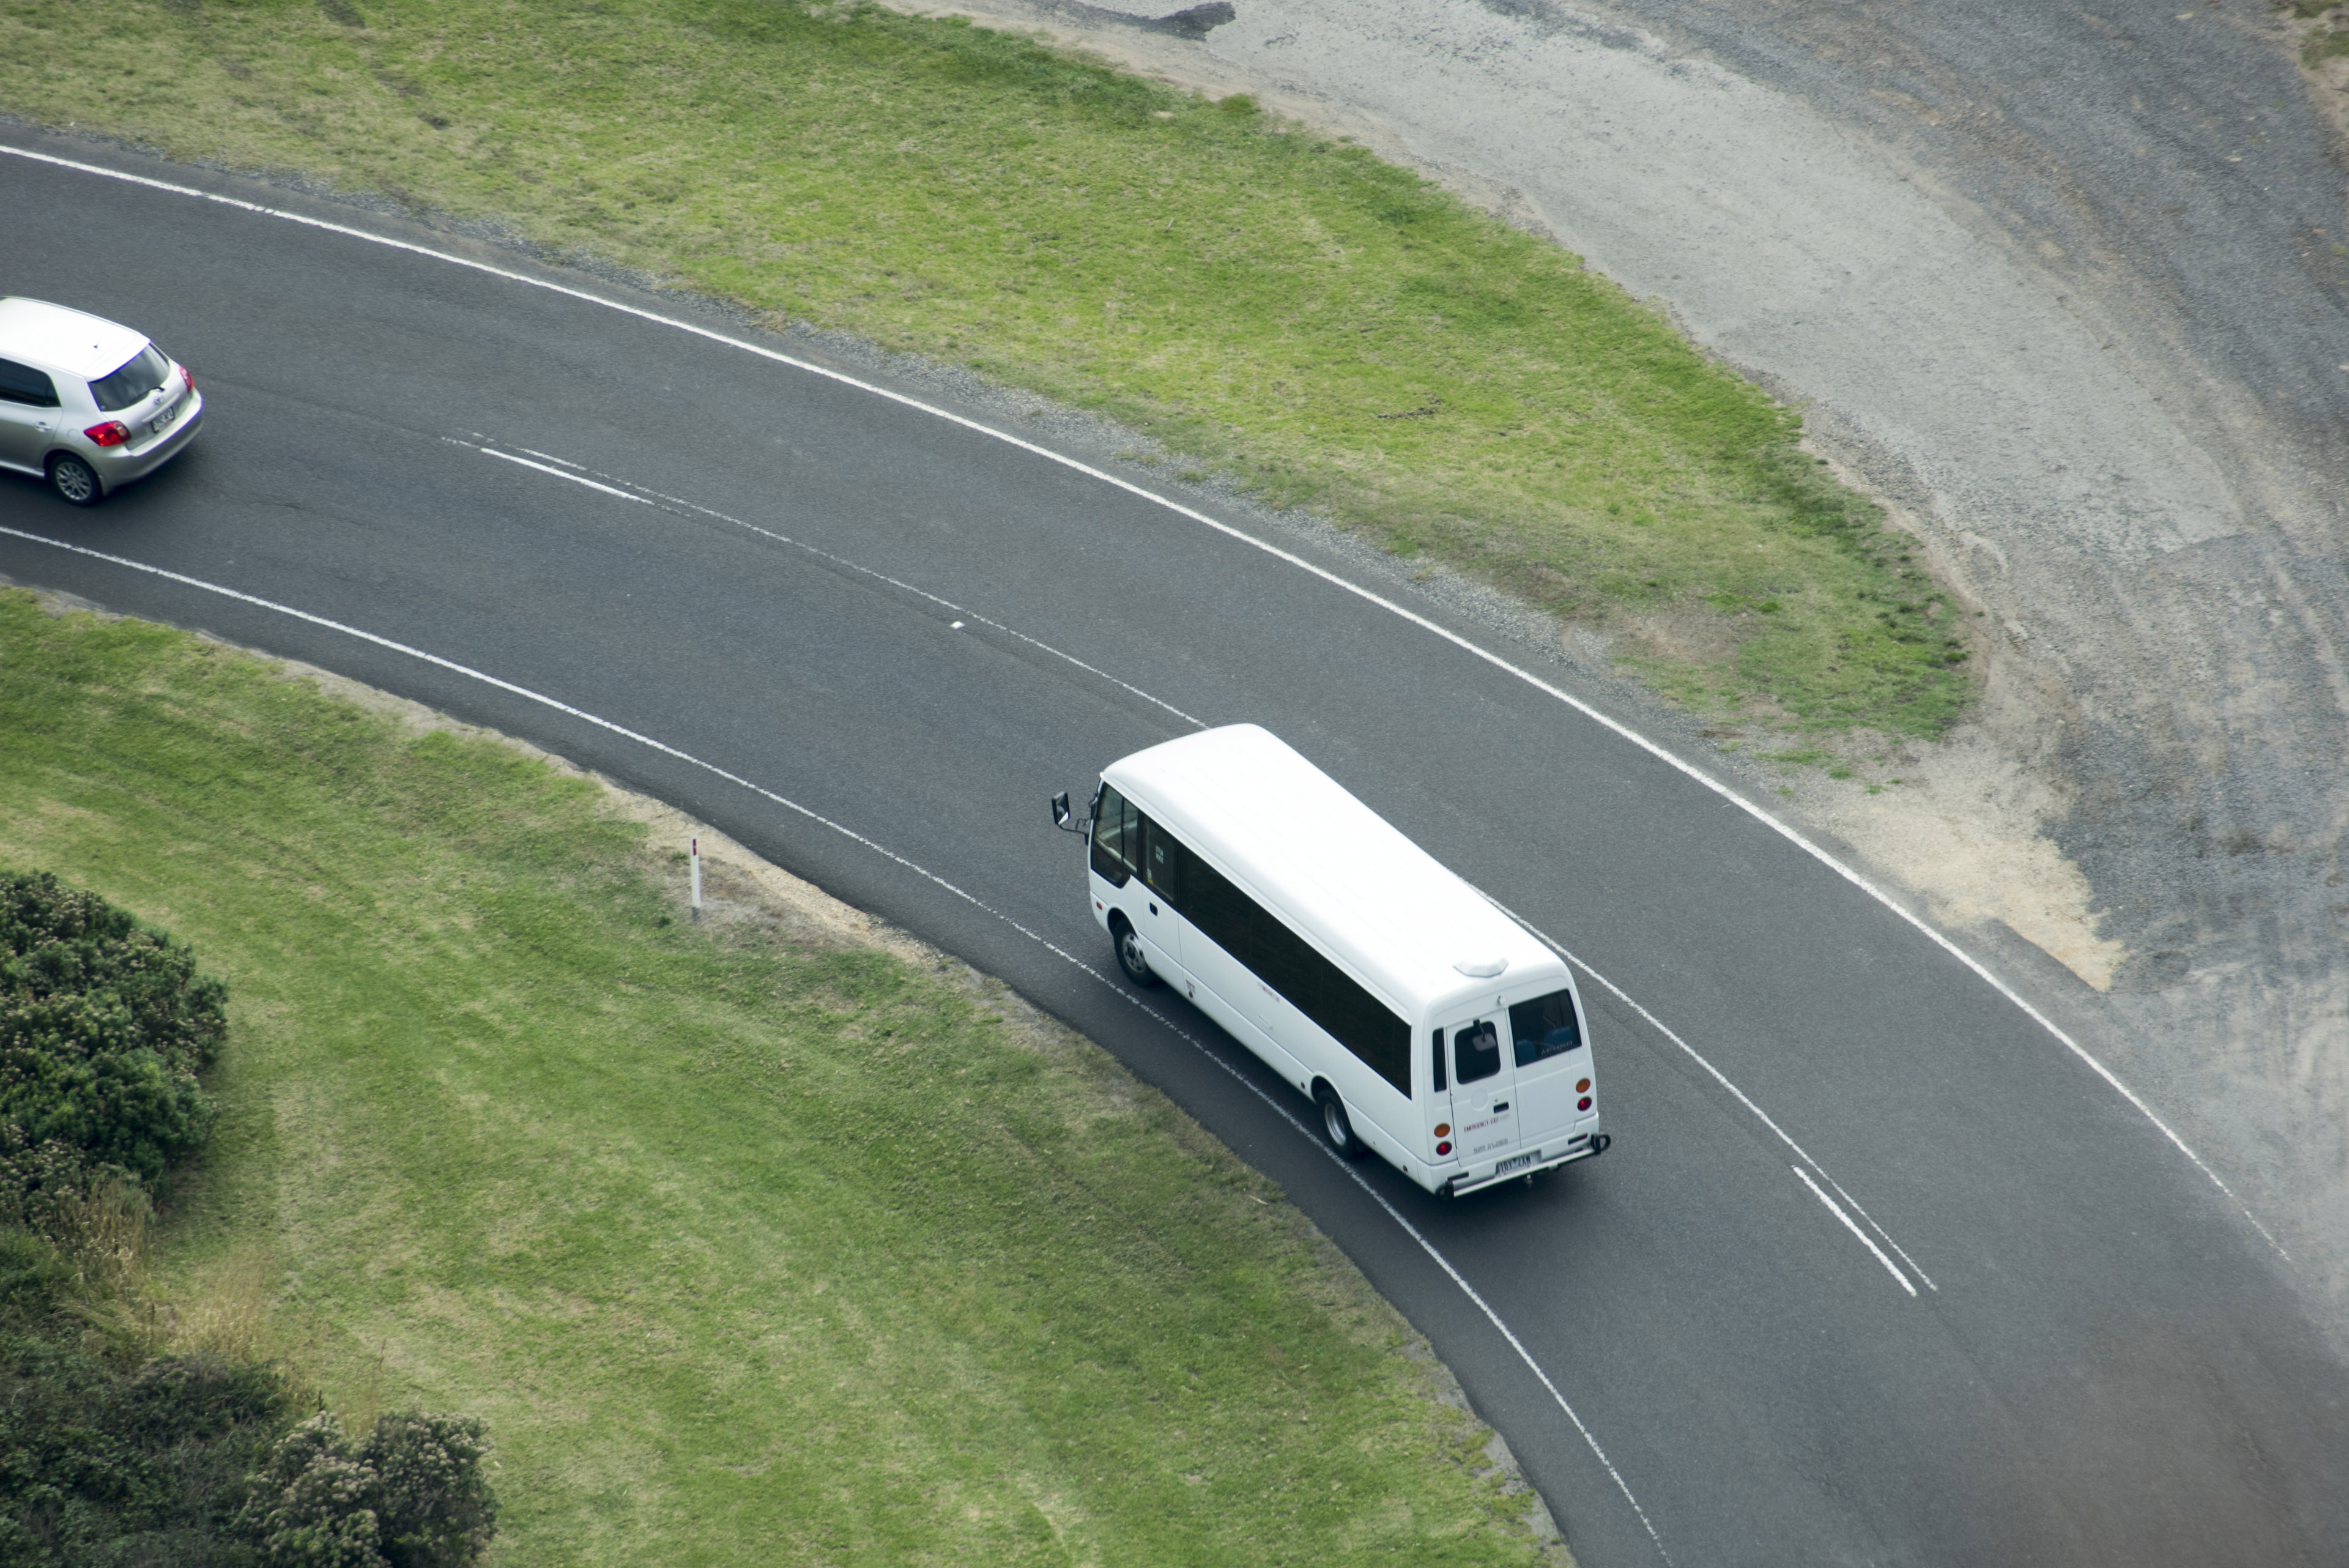 Aerial view of mini bus going along winding asphalt road